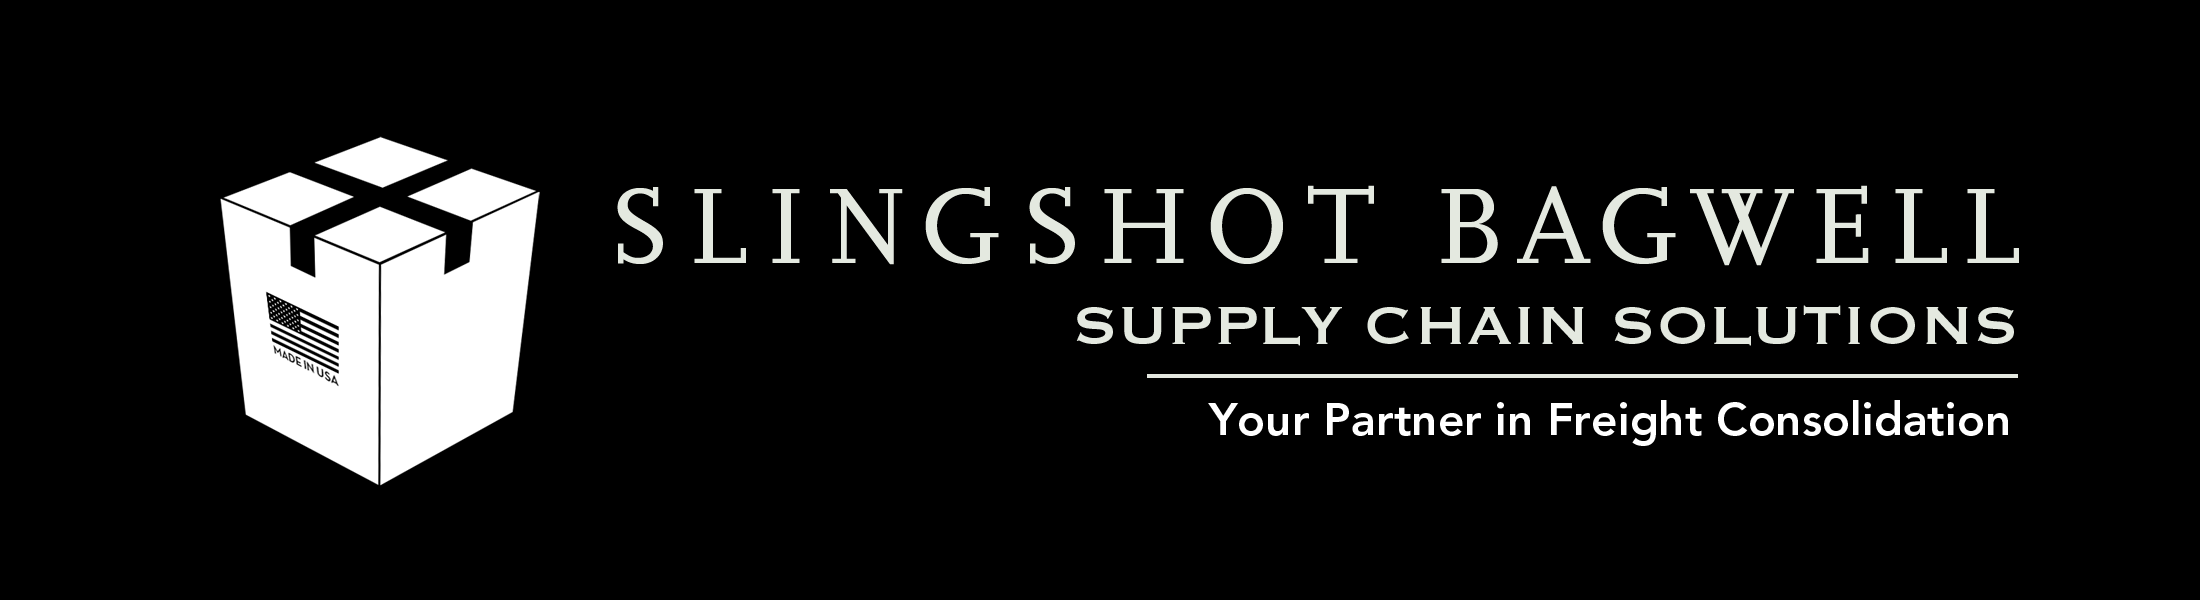 Slingshot Bagwell Supply Chain Solutions